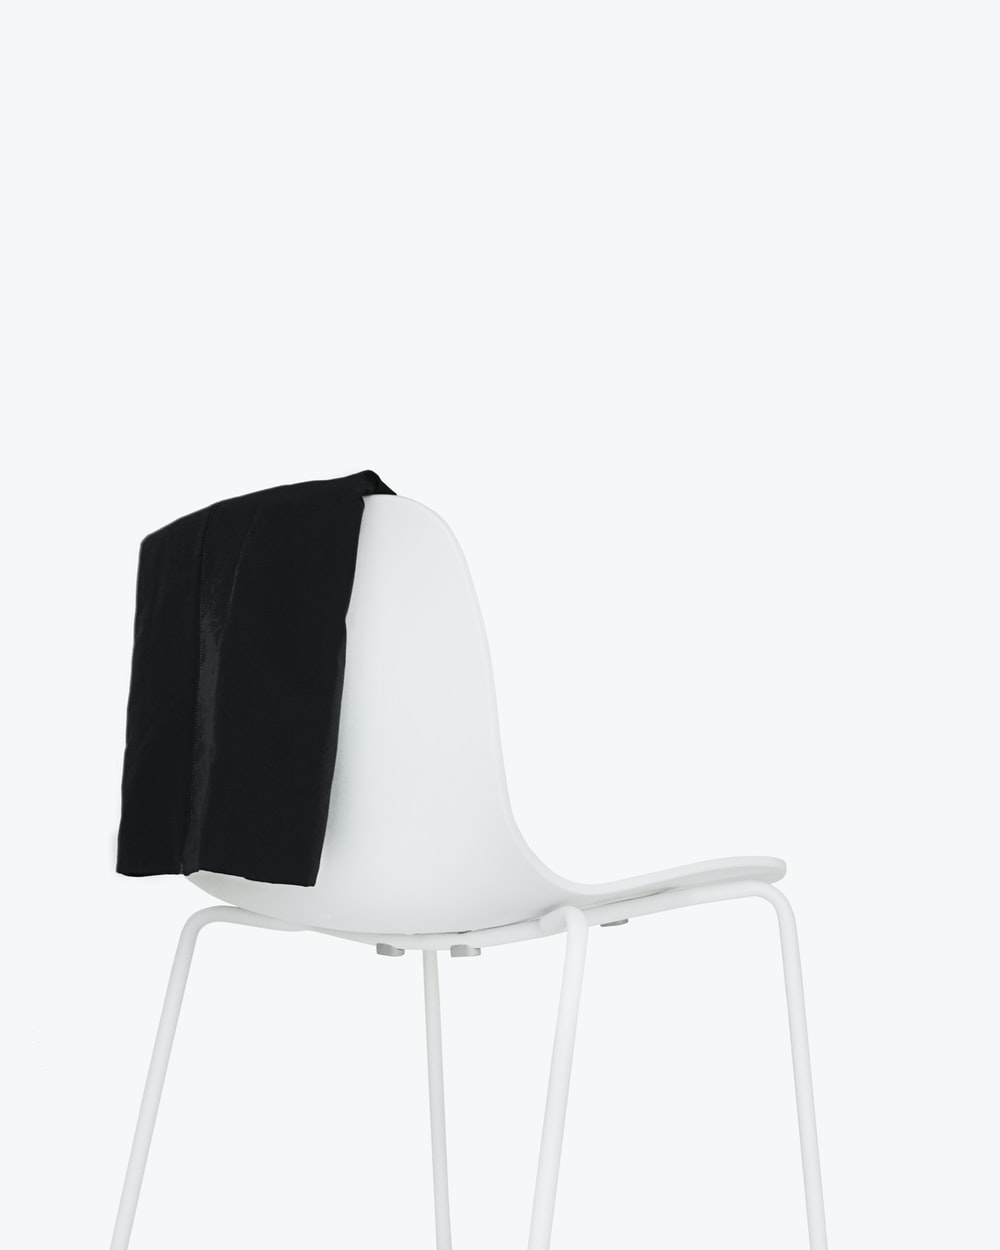 white metal armchair with white background